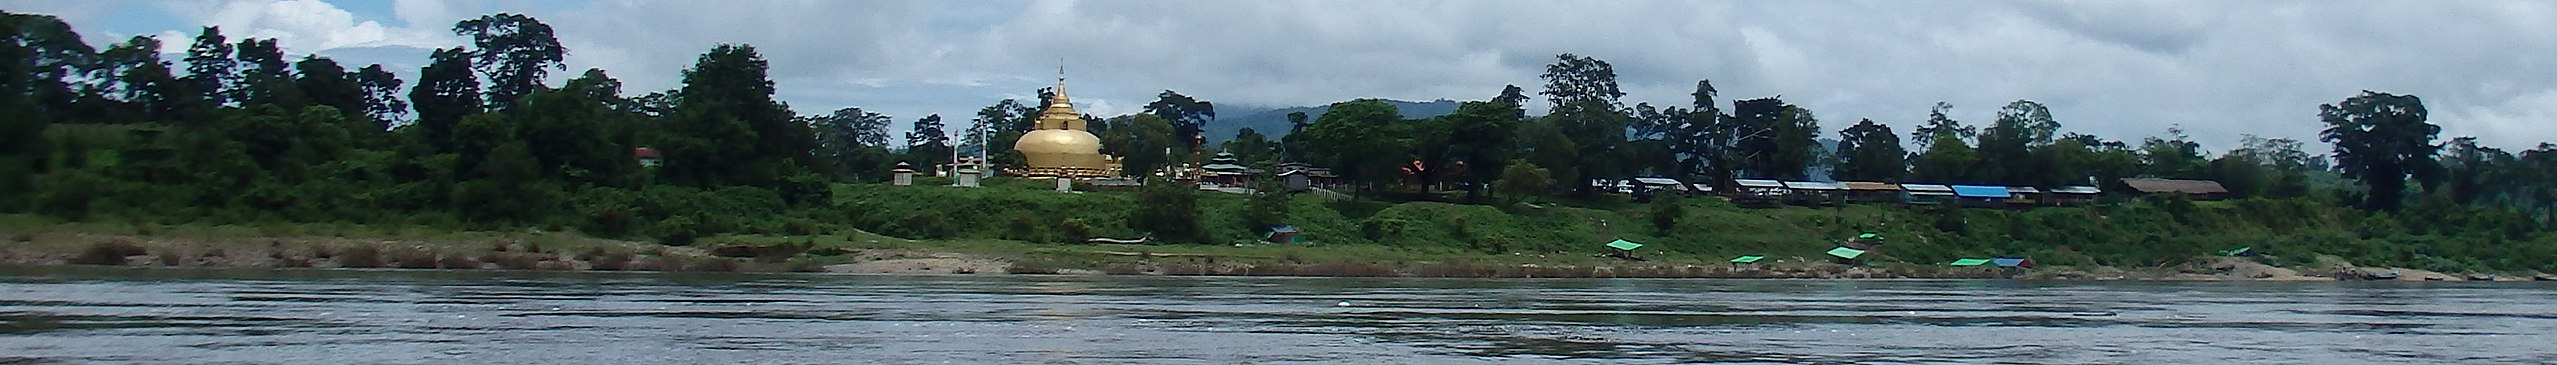 Myitkyina – Travel guide at Wikivoyage